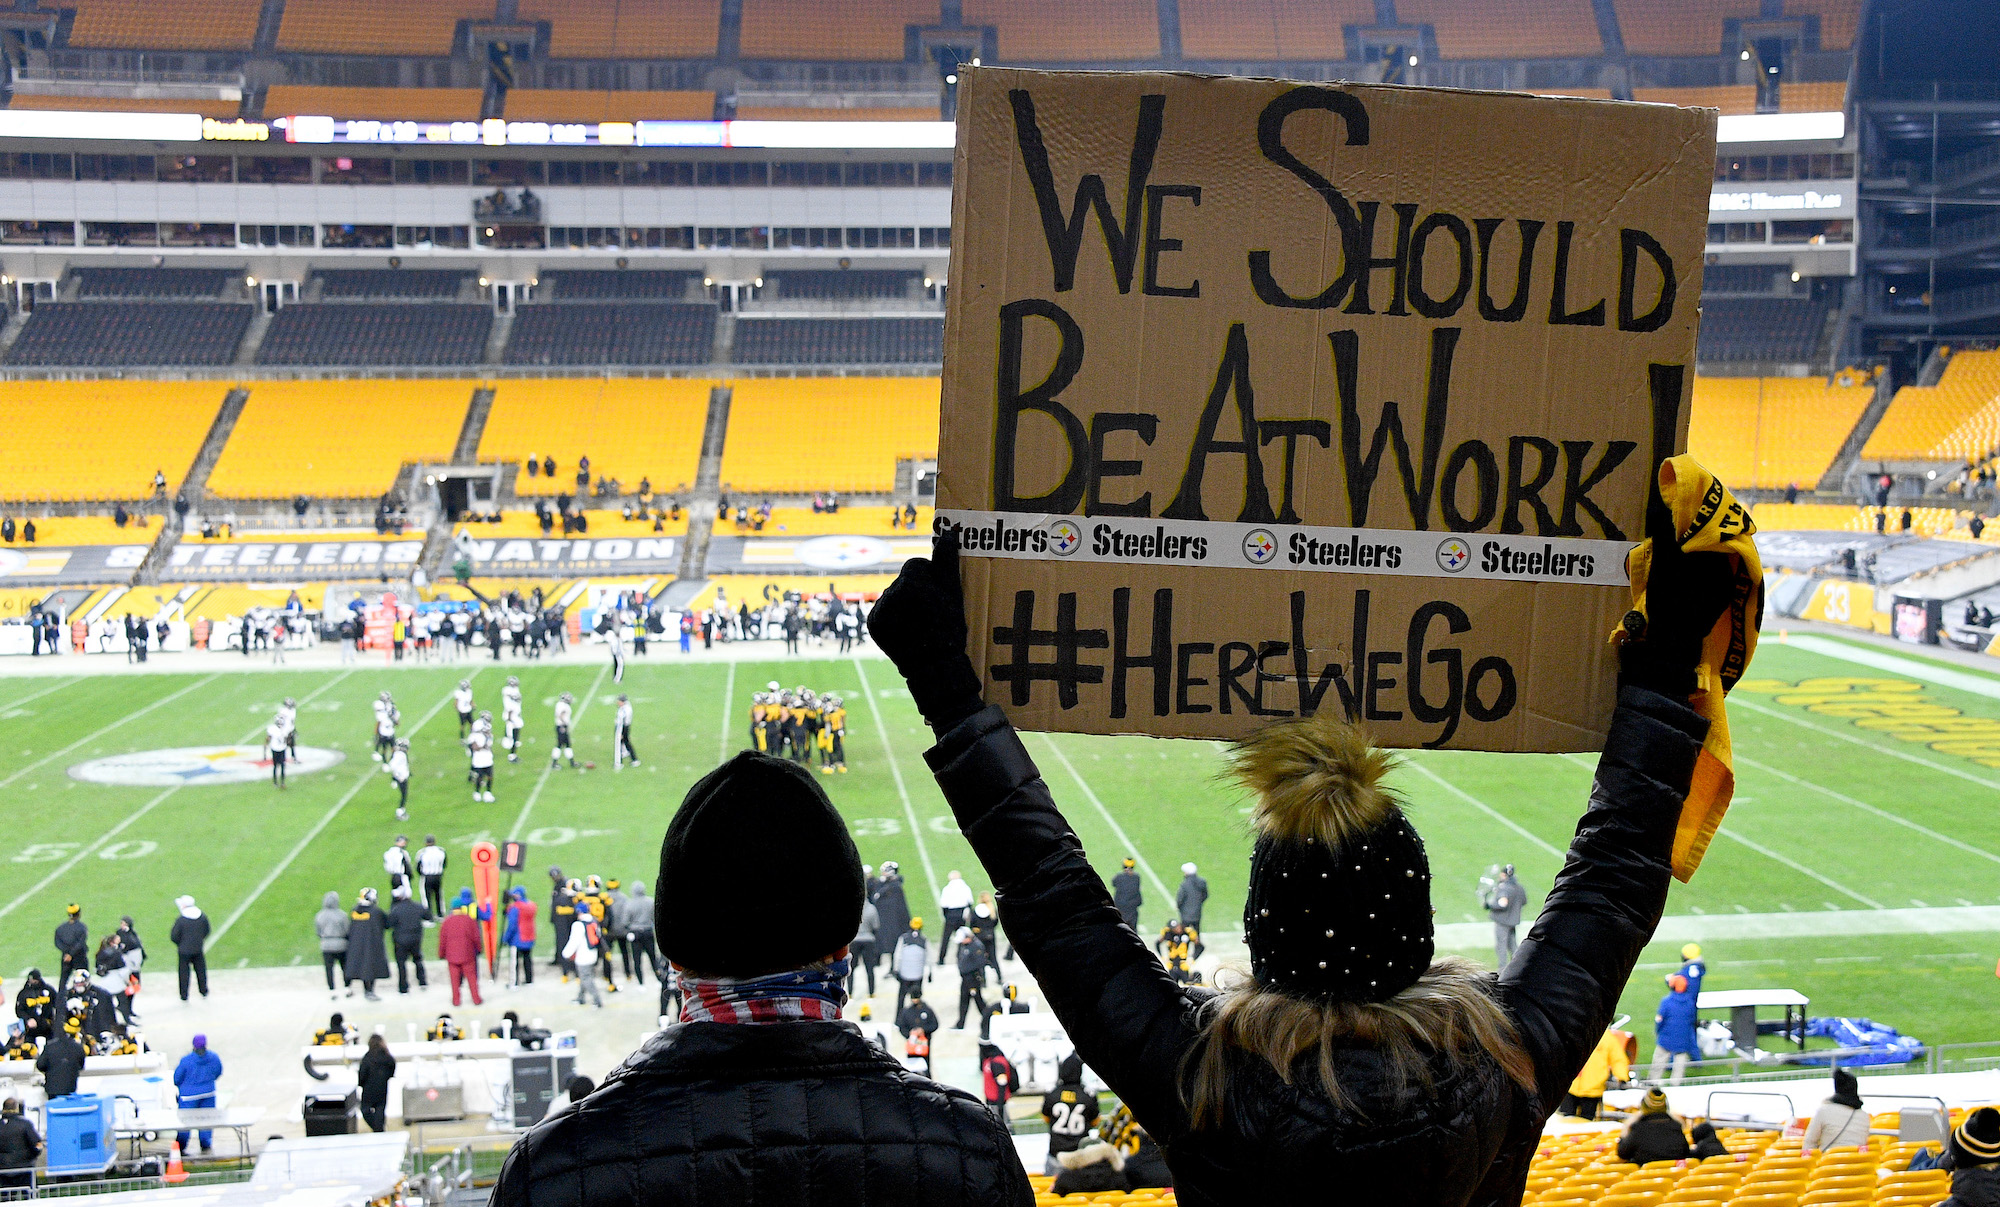 PITTSBURGH, PENNSYLVANIA - DECEMBER 02: A fan displays a sign during the third quarter of a game between the Pittsburgh Steelers and Baltimore Ravens at Heinz Field on December 02, 2020 in Pittsburgh, Pennsylvania. (Photo by Joe Sargent/Getty Images)